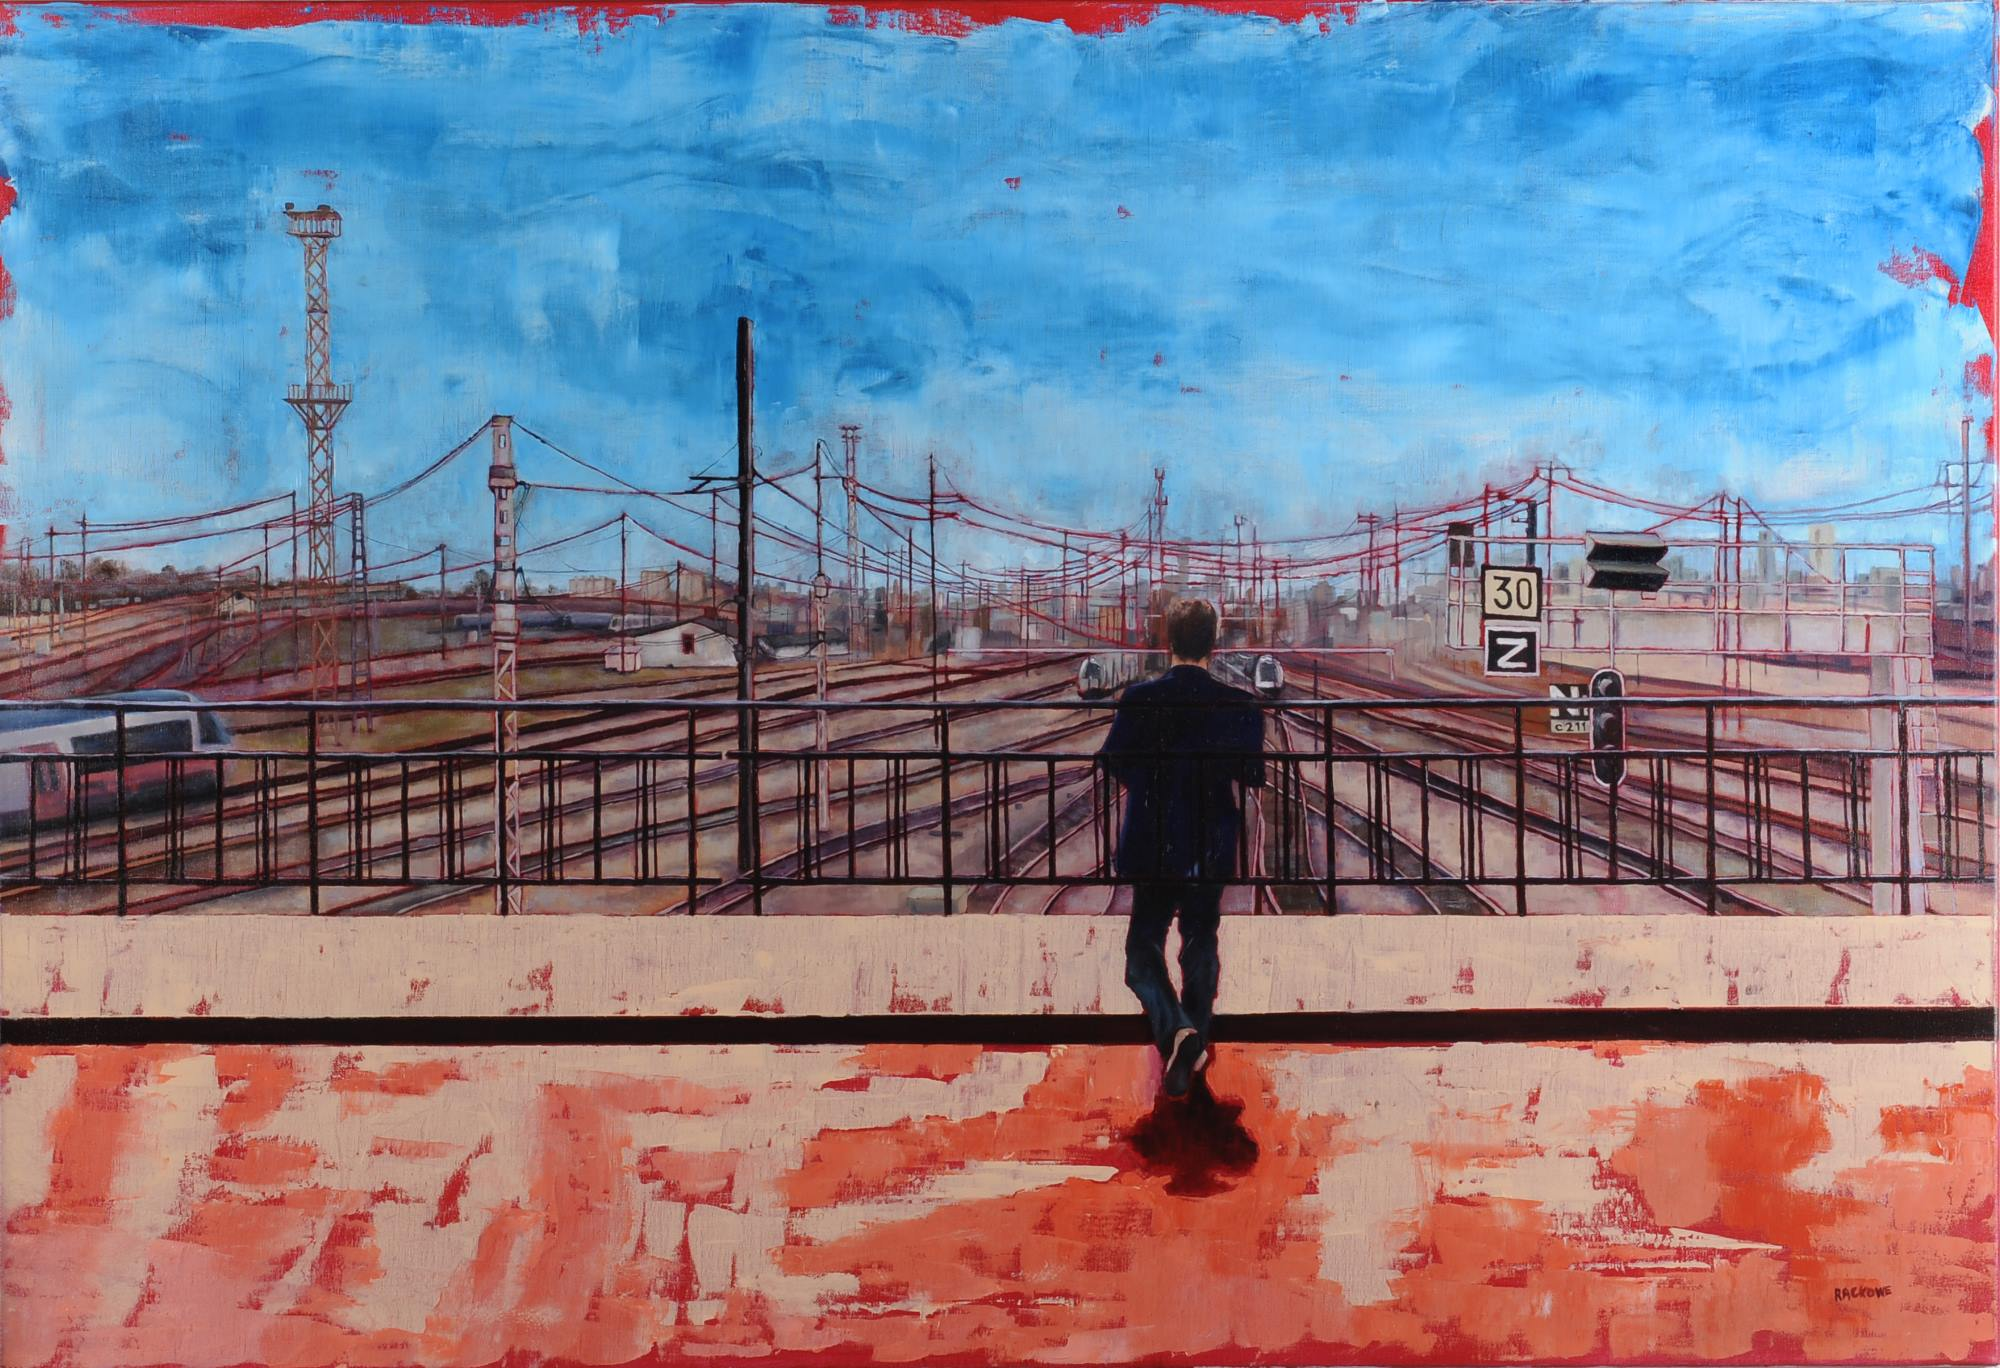 Crossing Lines painting by Amanda Rackowe